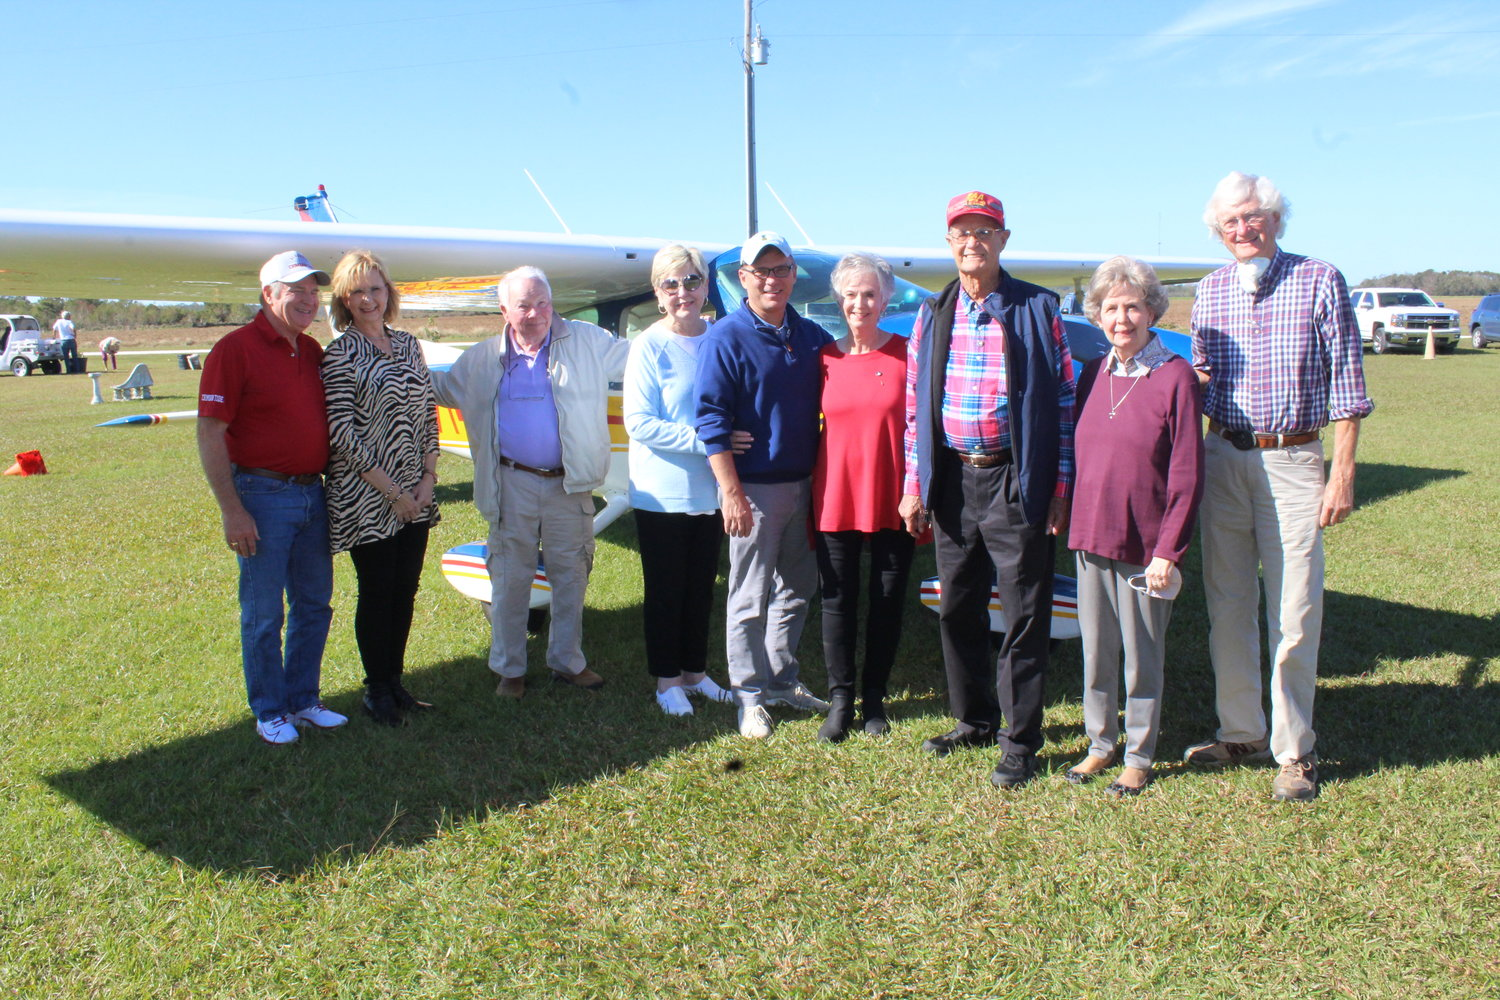 Ray and Rita Reeves surrounded by family following a ceremony held Nov. 21 in Magnolia Springs.